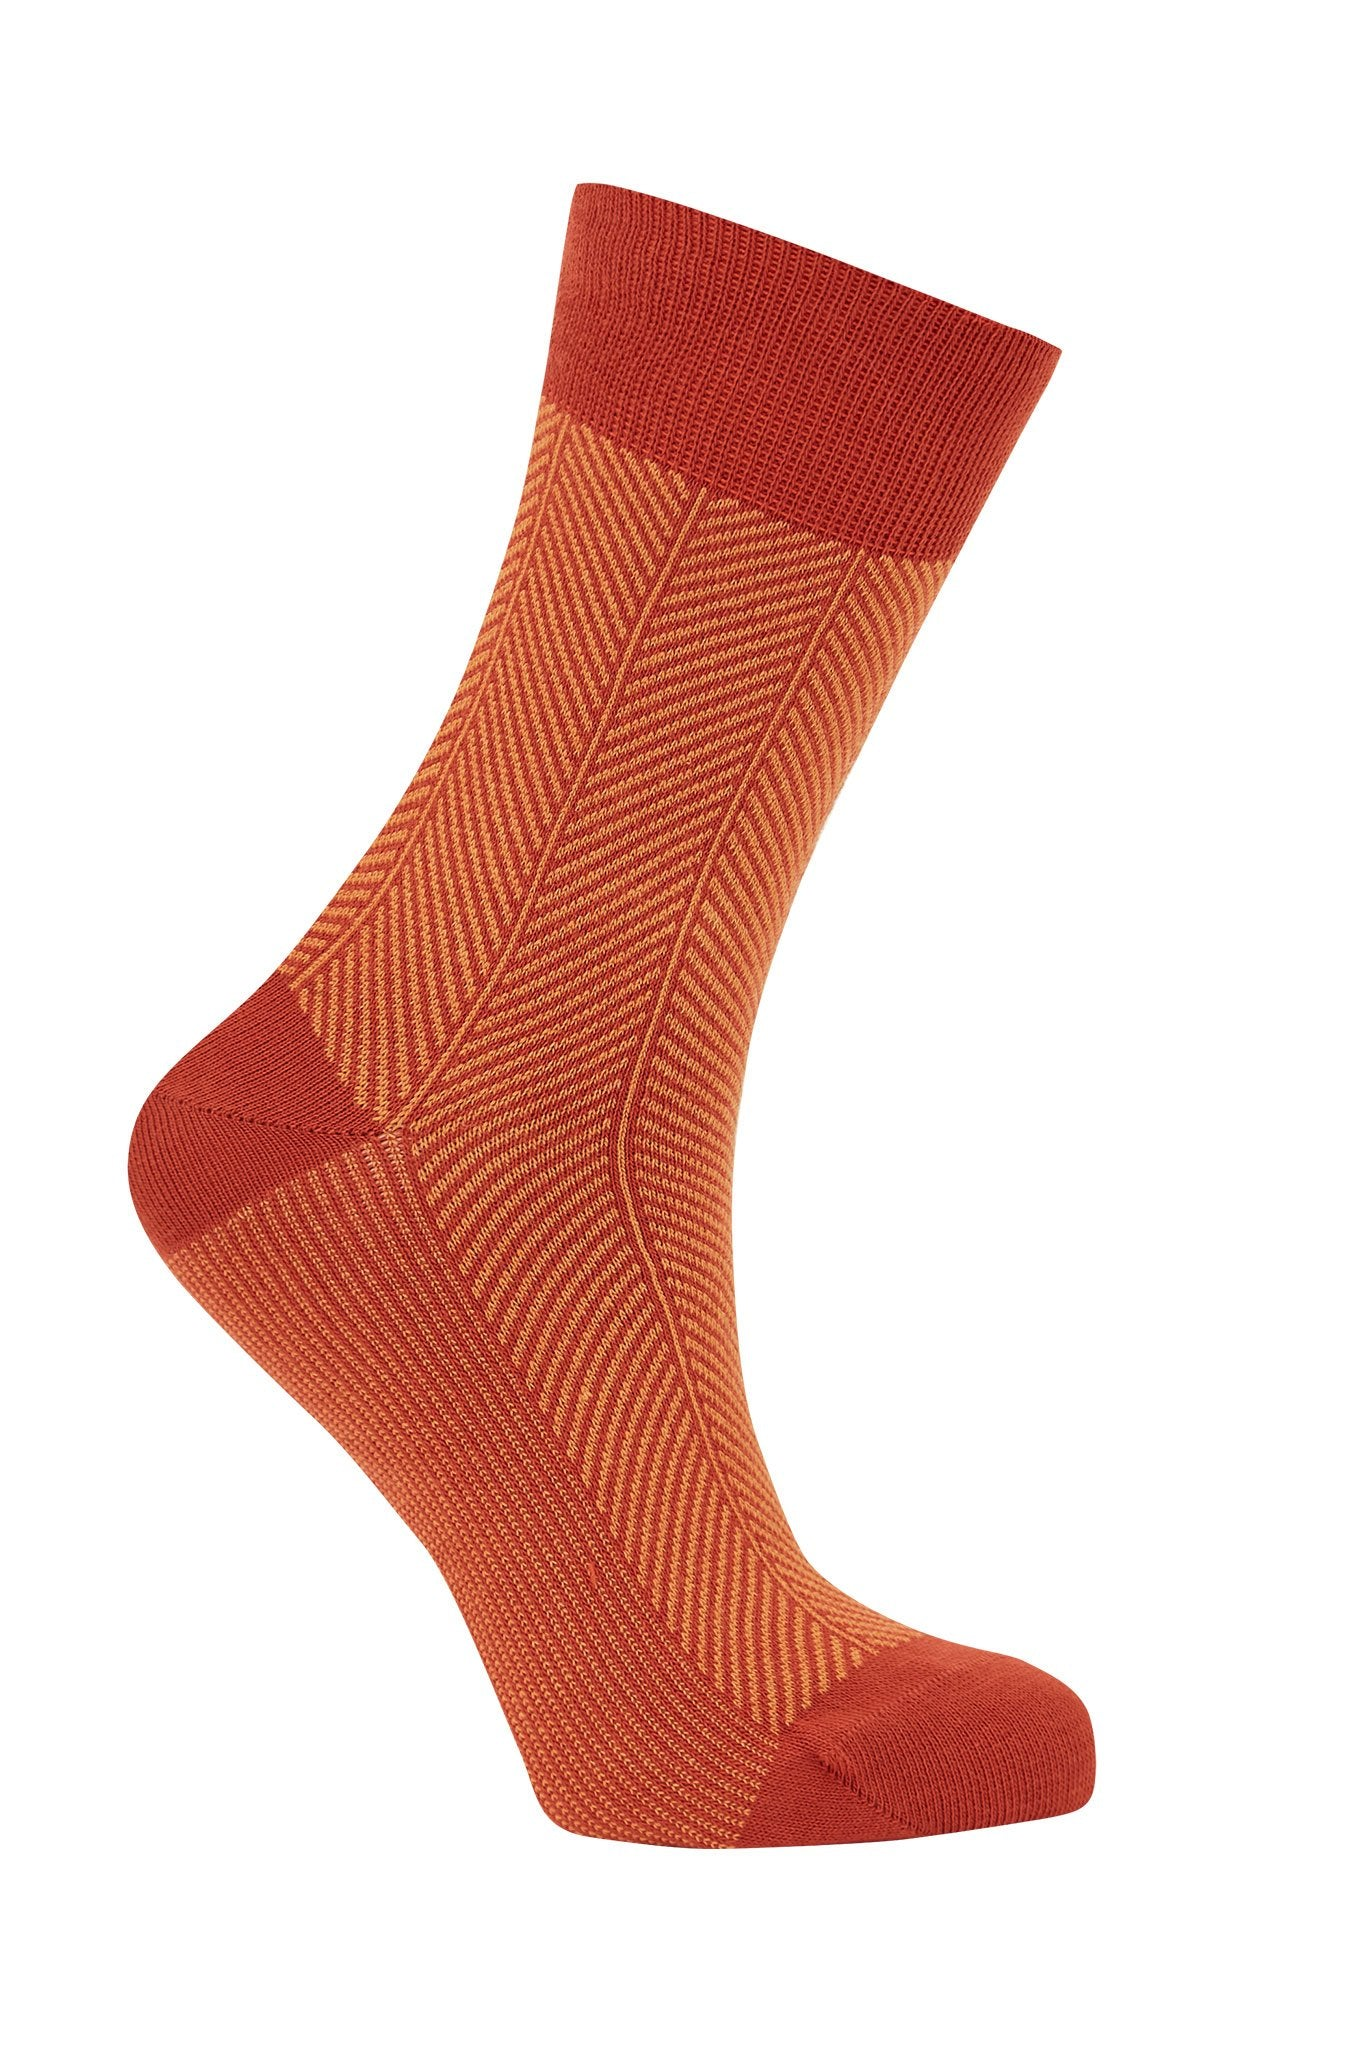 HERRINGBONE Lava - GOTS Organic Cotton Socks